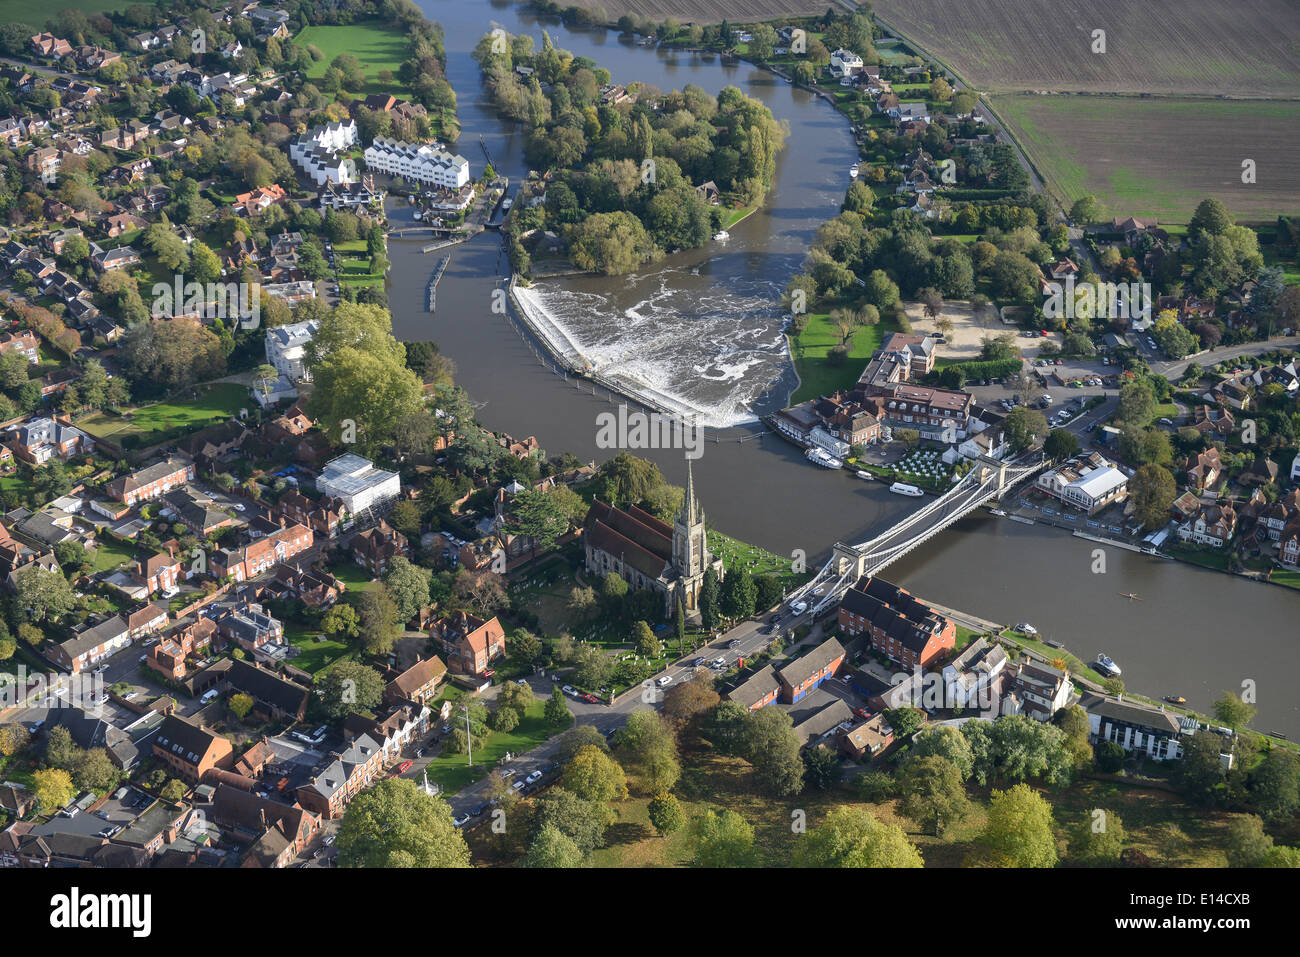 An aerial view showing Marlow in Oxfordshire and the River Thames - Stock Image